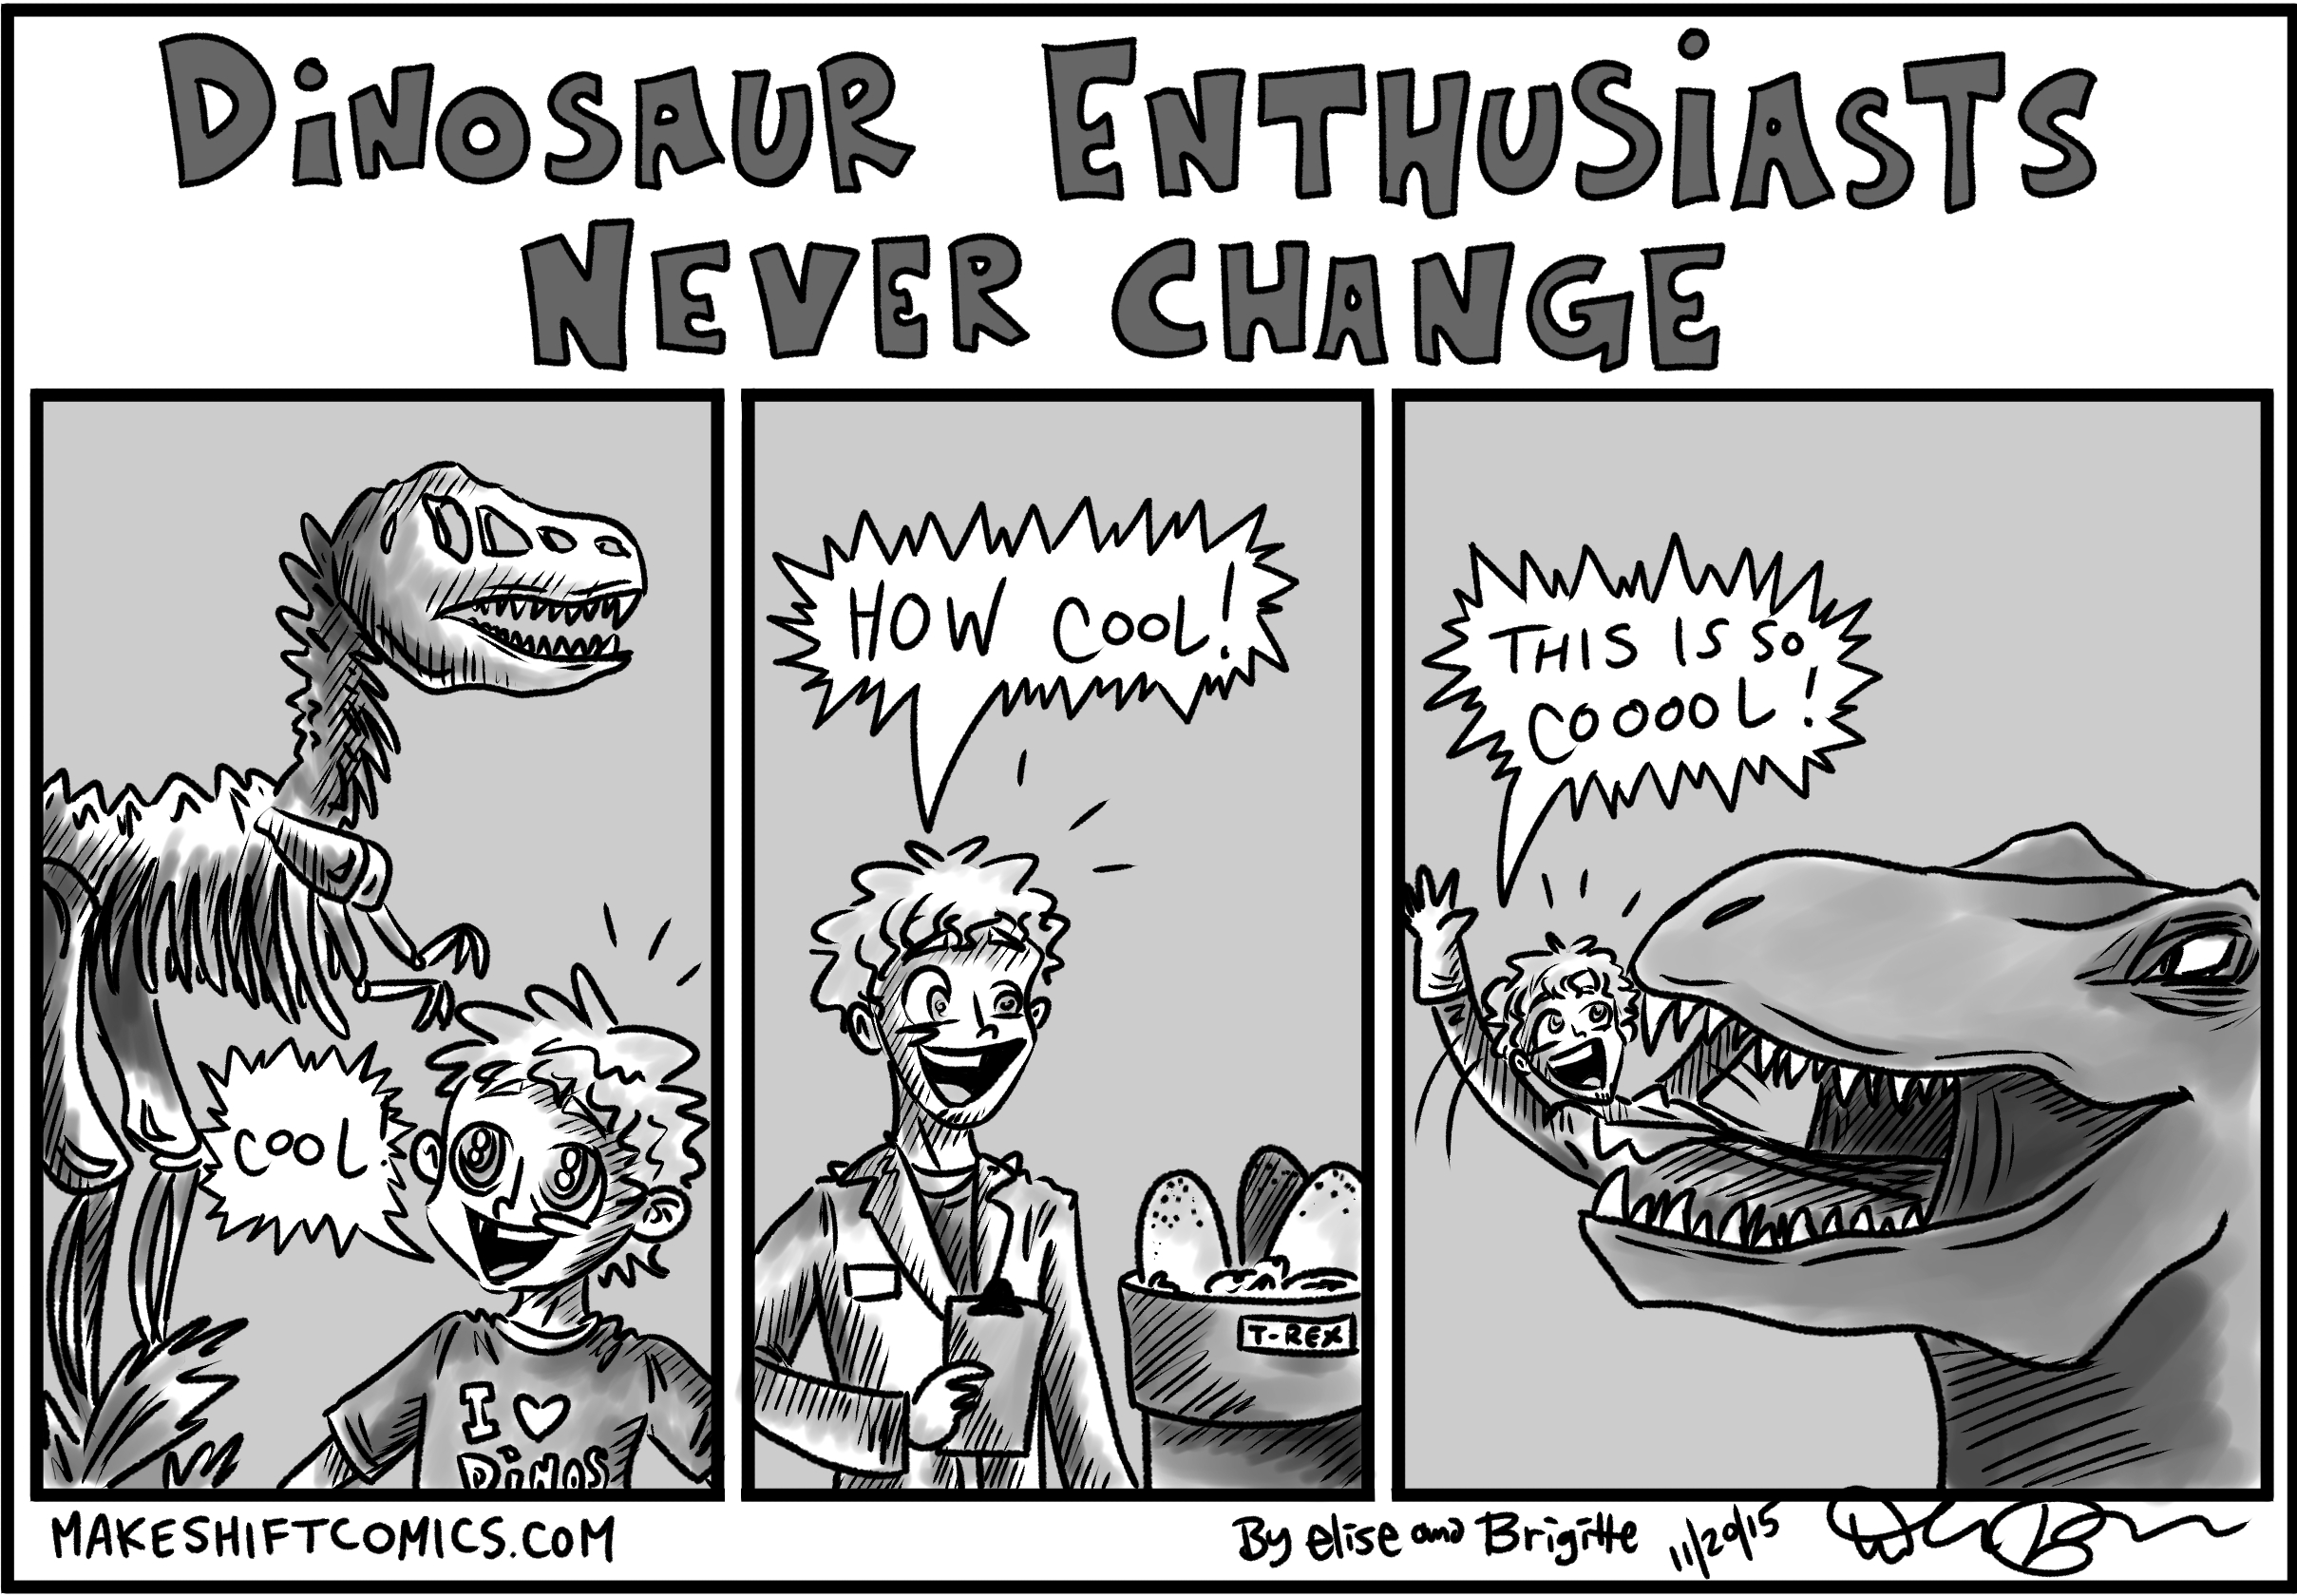 Dinosaur Enthusiasts Never Change